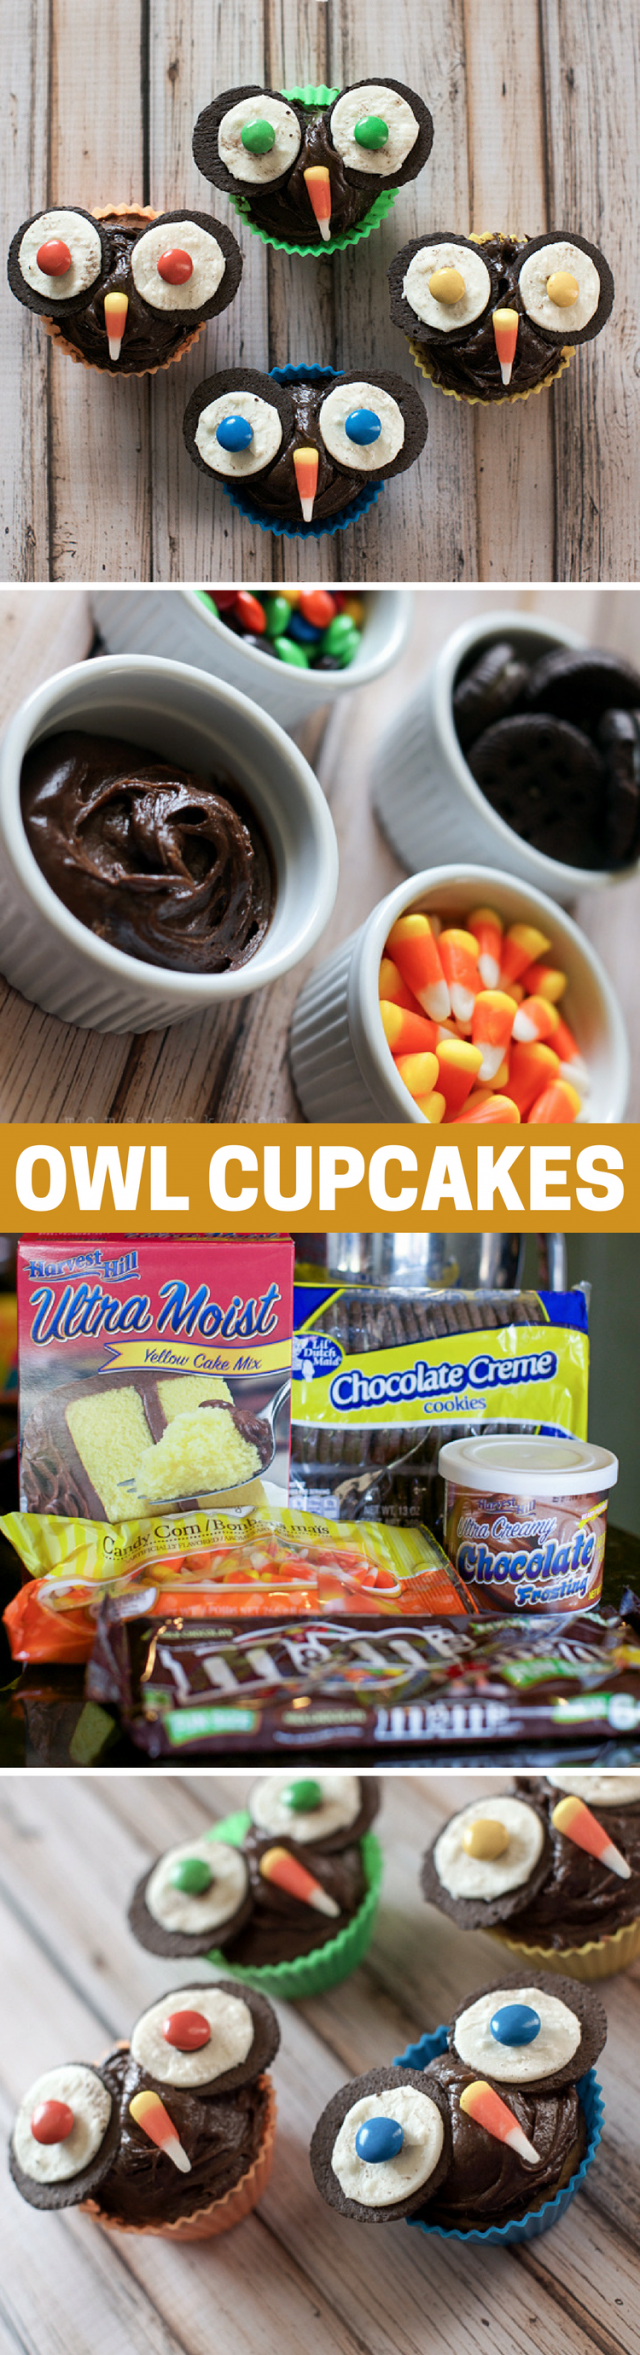 How to a Make Owl Cupcake Recipe for Fall and Halloween!